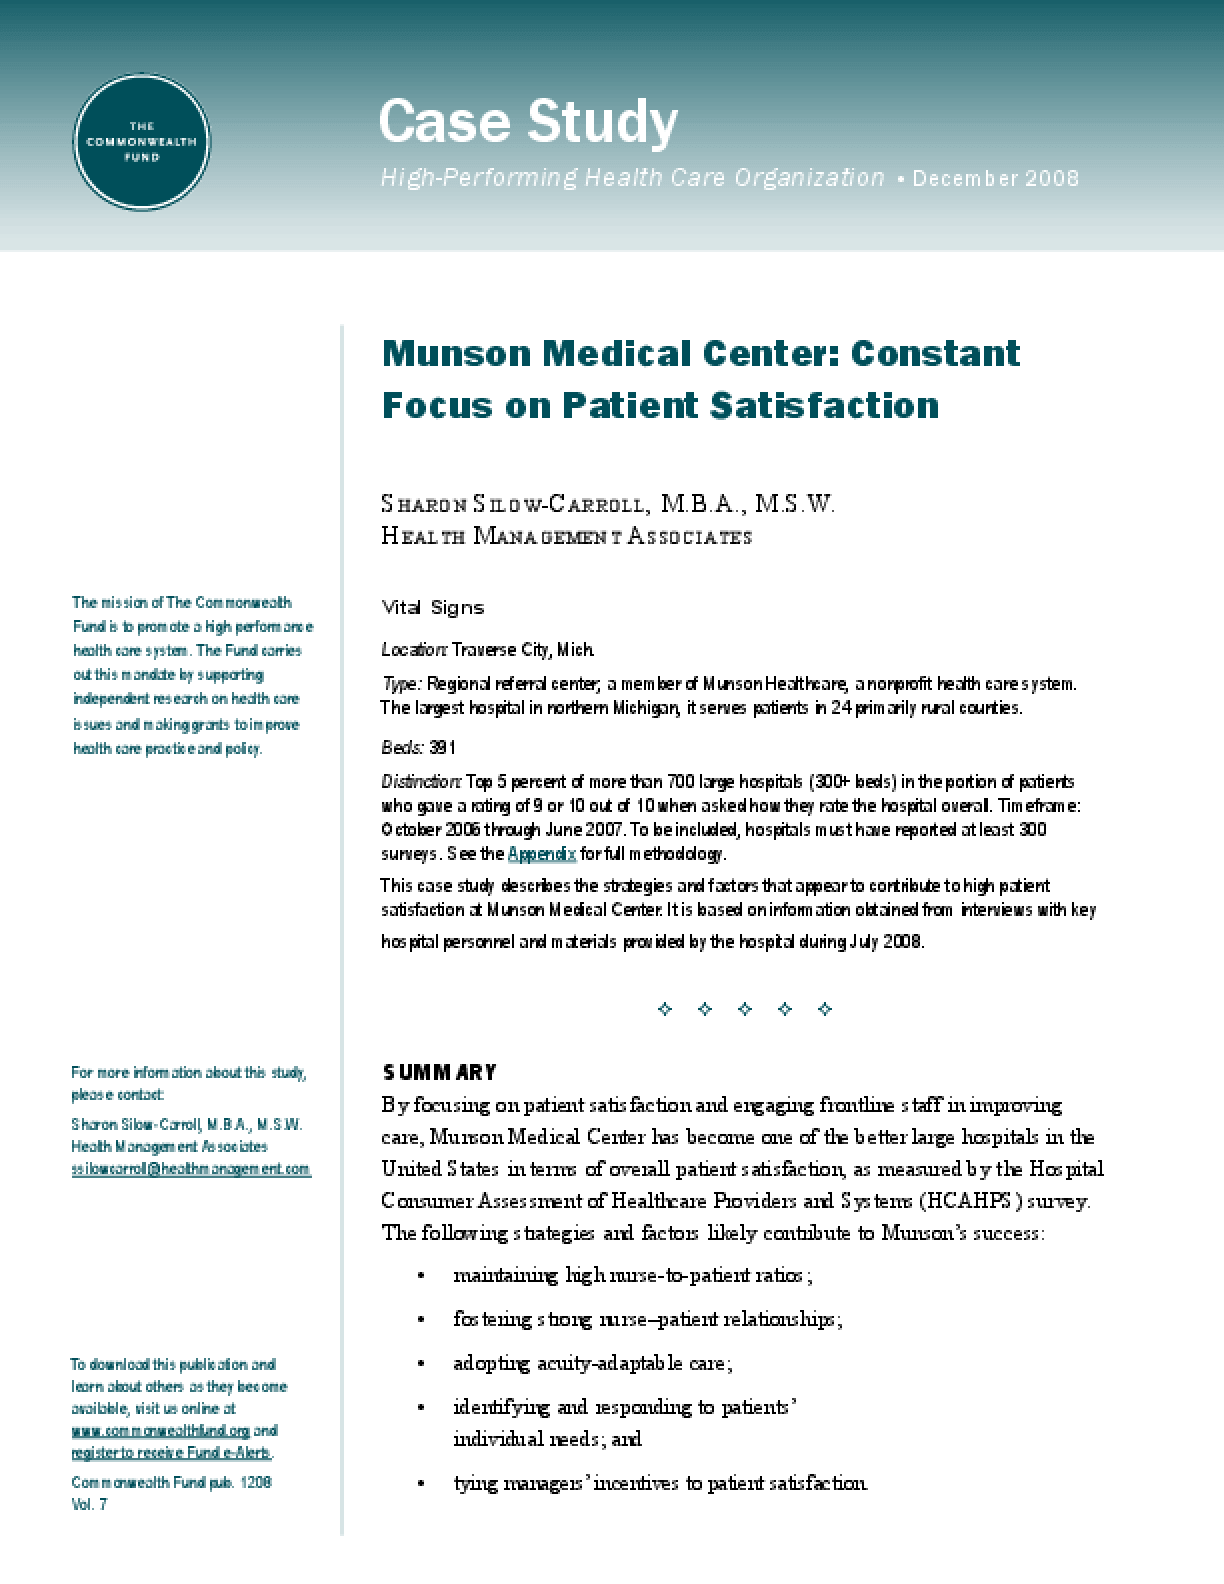 Munson Medical Center: Constant Focus on Patient Satisfaction